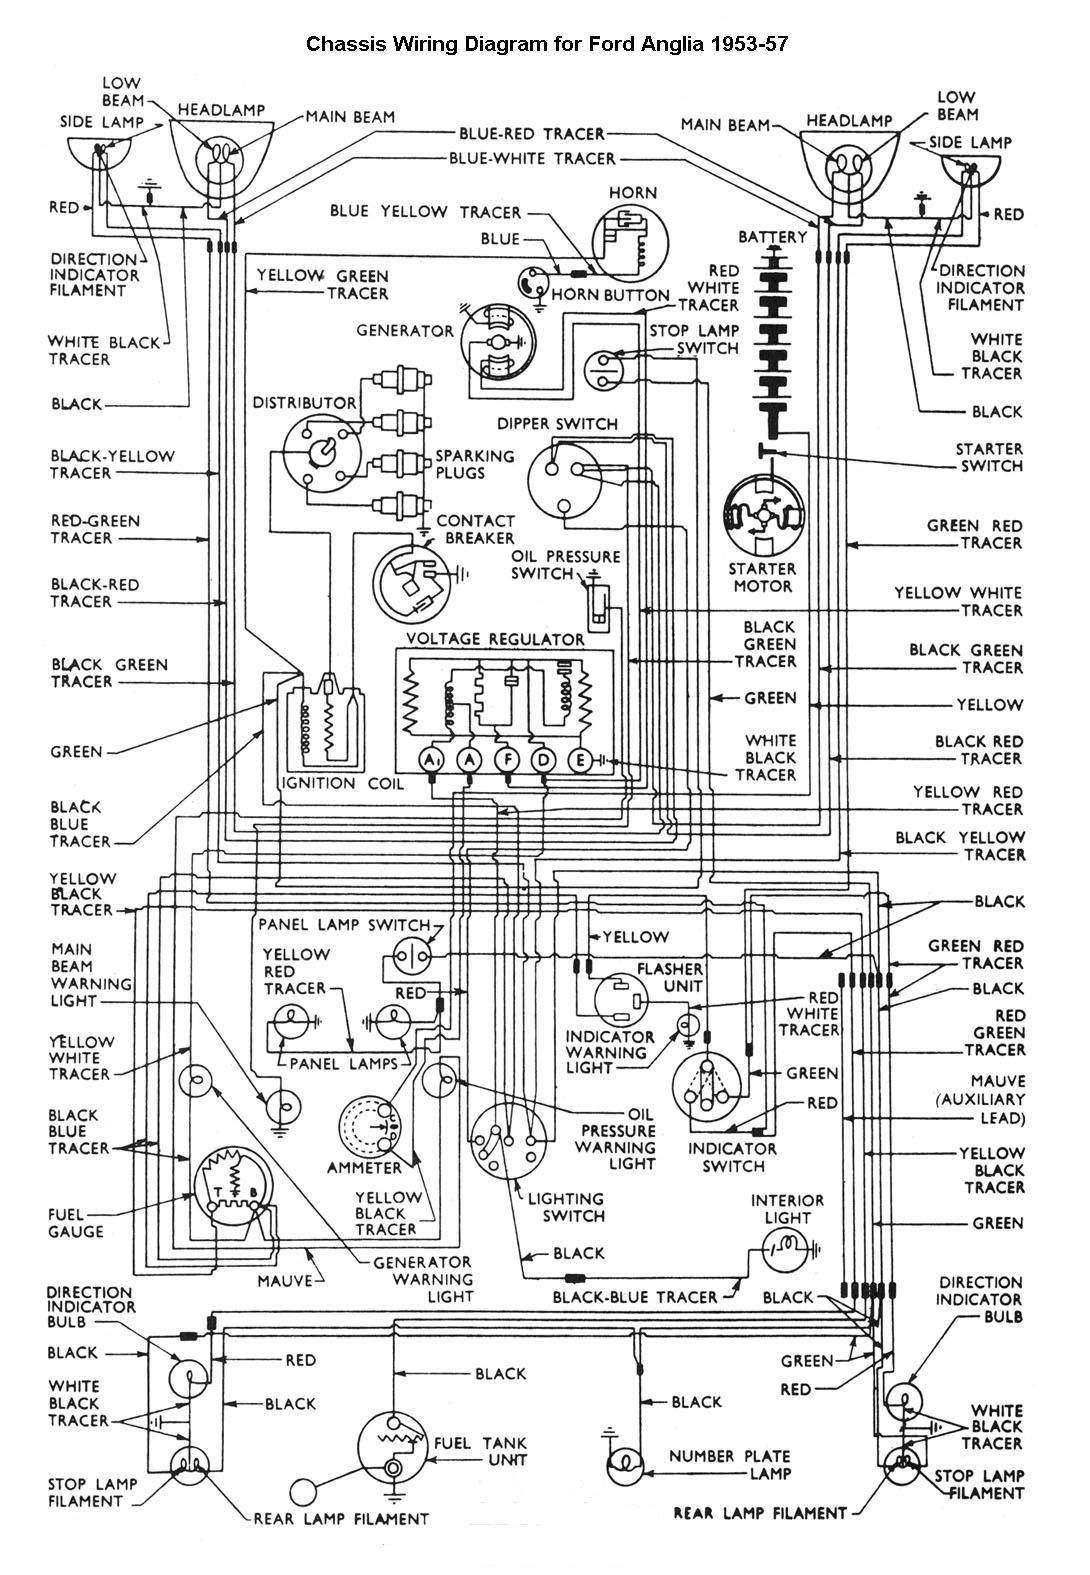 Car Wiring Diagram Cool Ideas Pinte 1956 Dodge Truck More